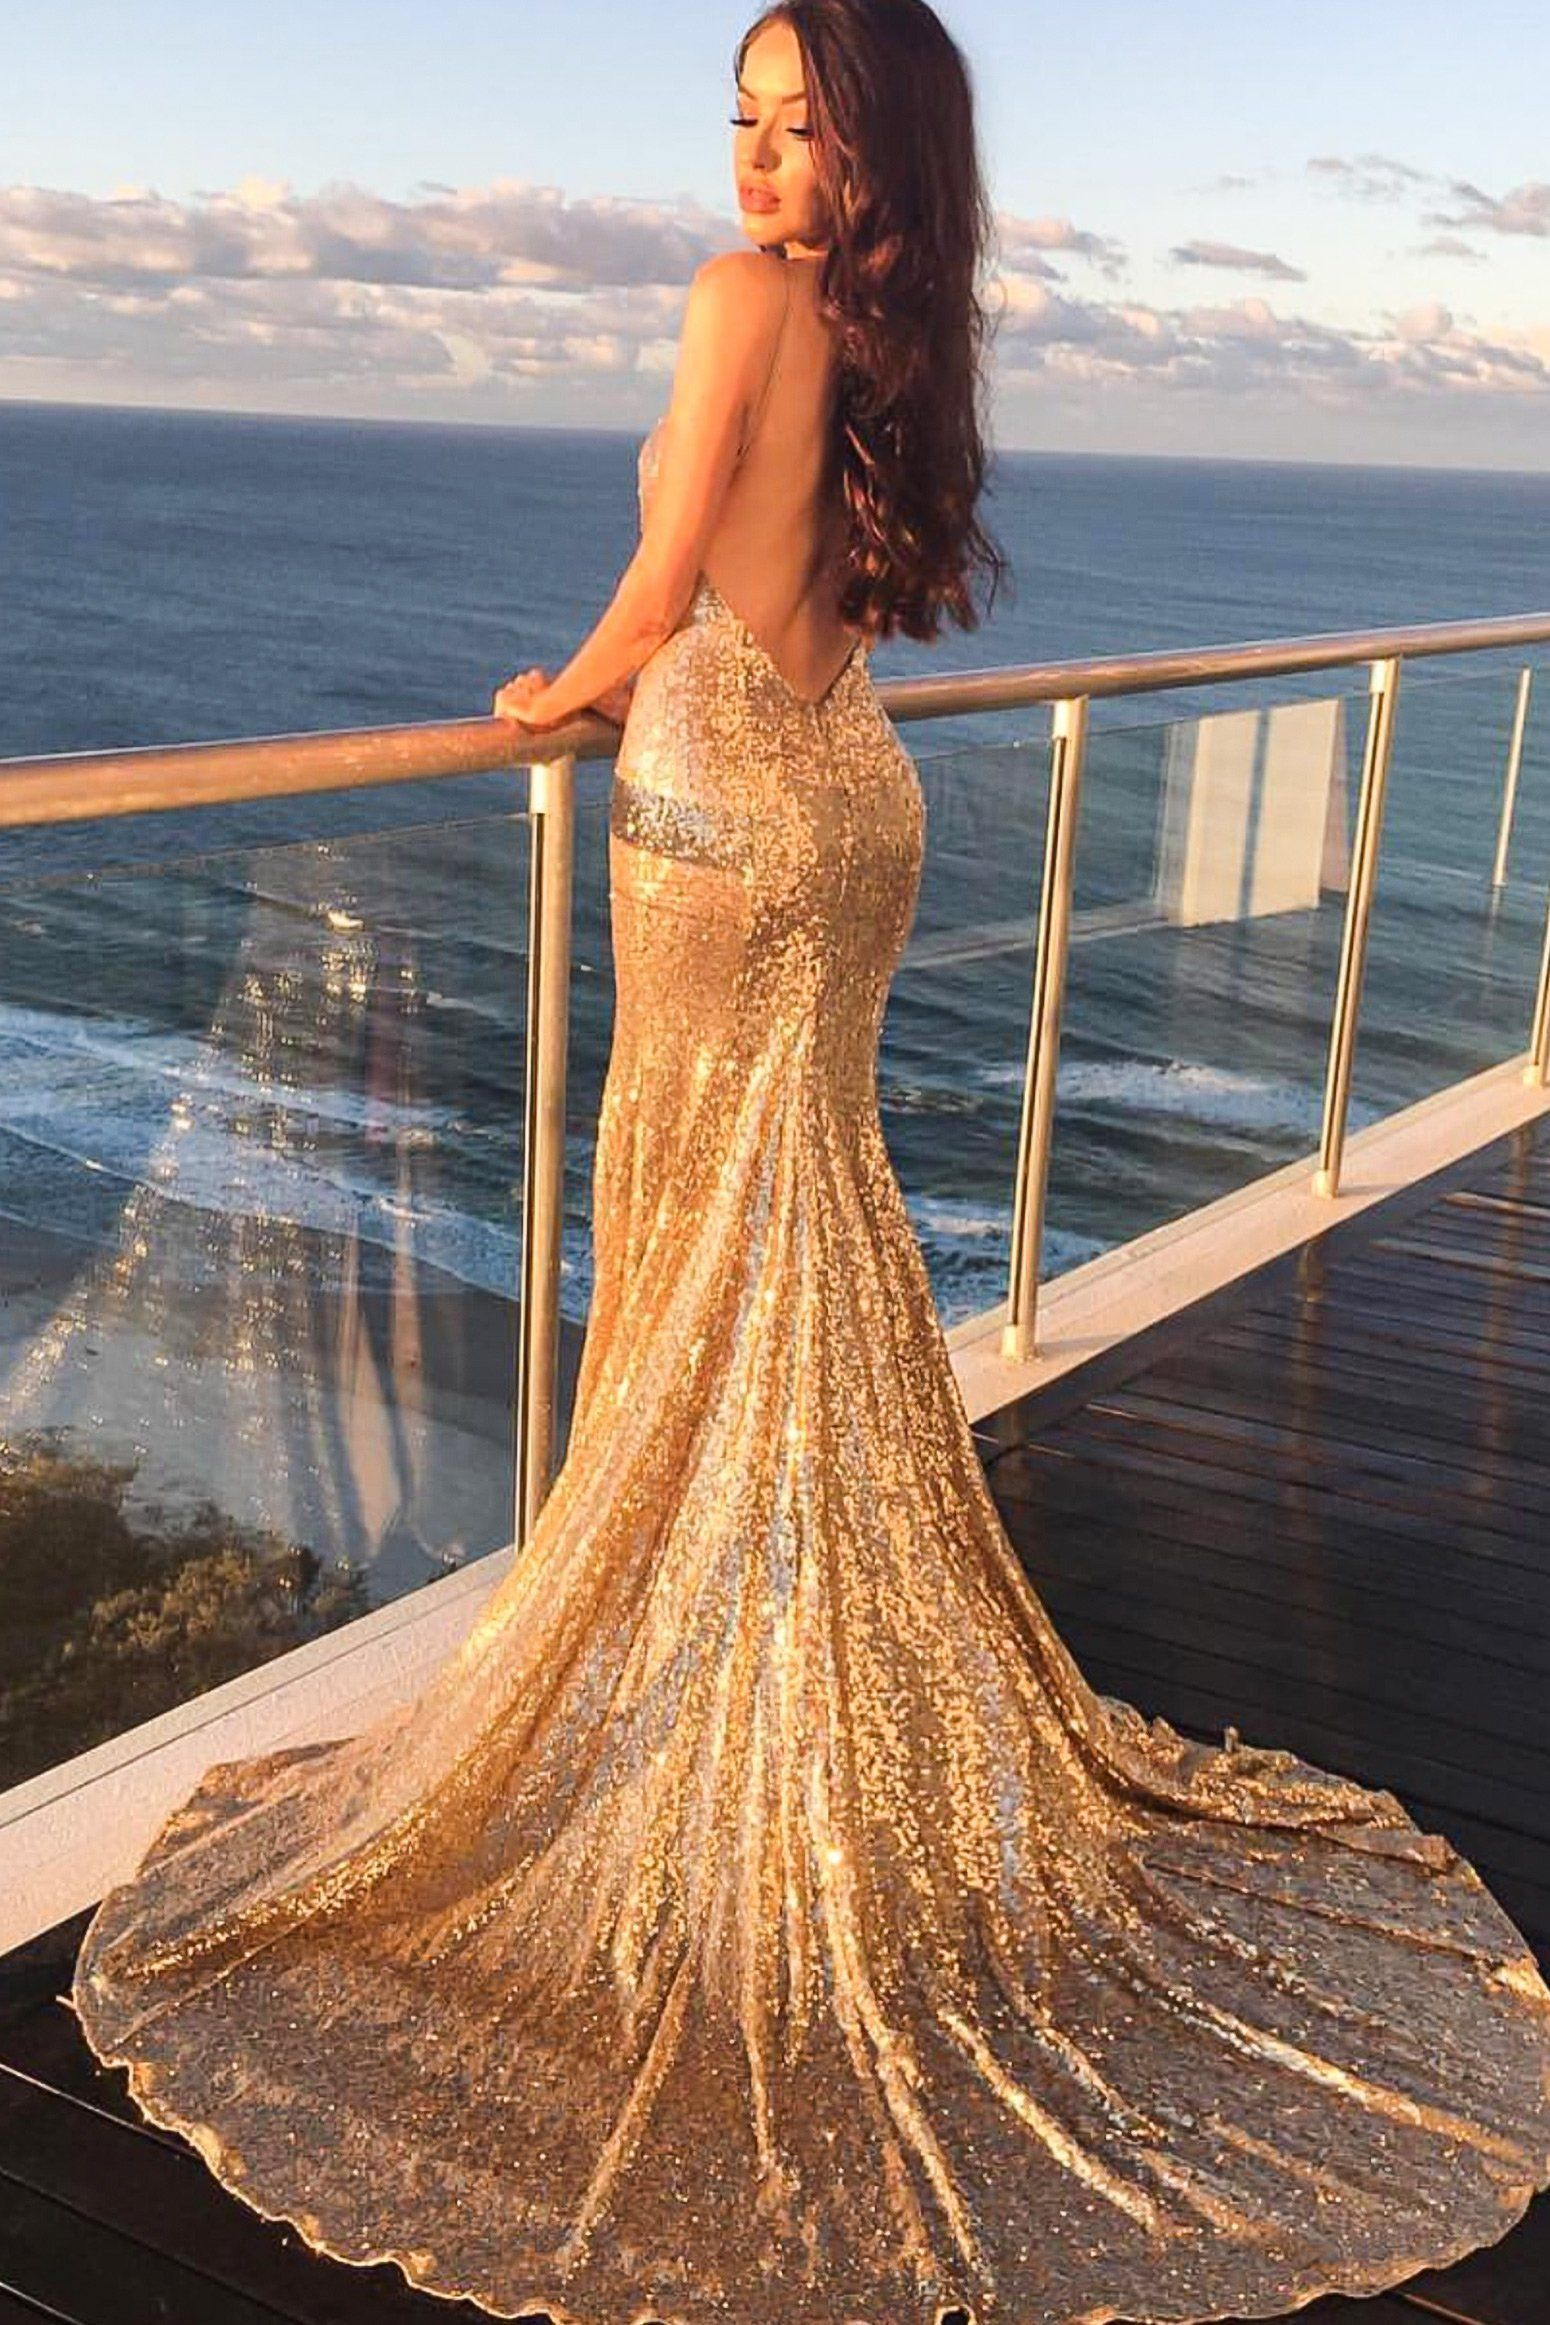 2020 Formal Dresses Party Dresses Peasant Dress Tall Plus Size Special Occasion In 2020 Prom Dresses Long Mermaid Cute Prom Dresses Sequin Prom Dresses [ 2325 x 1550 Pixel ]